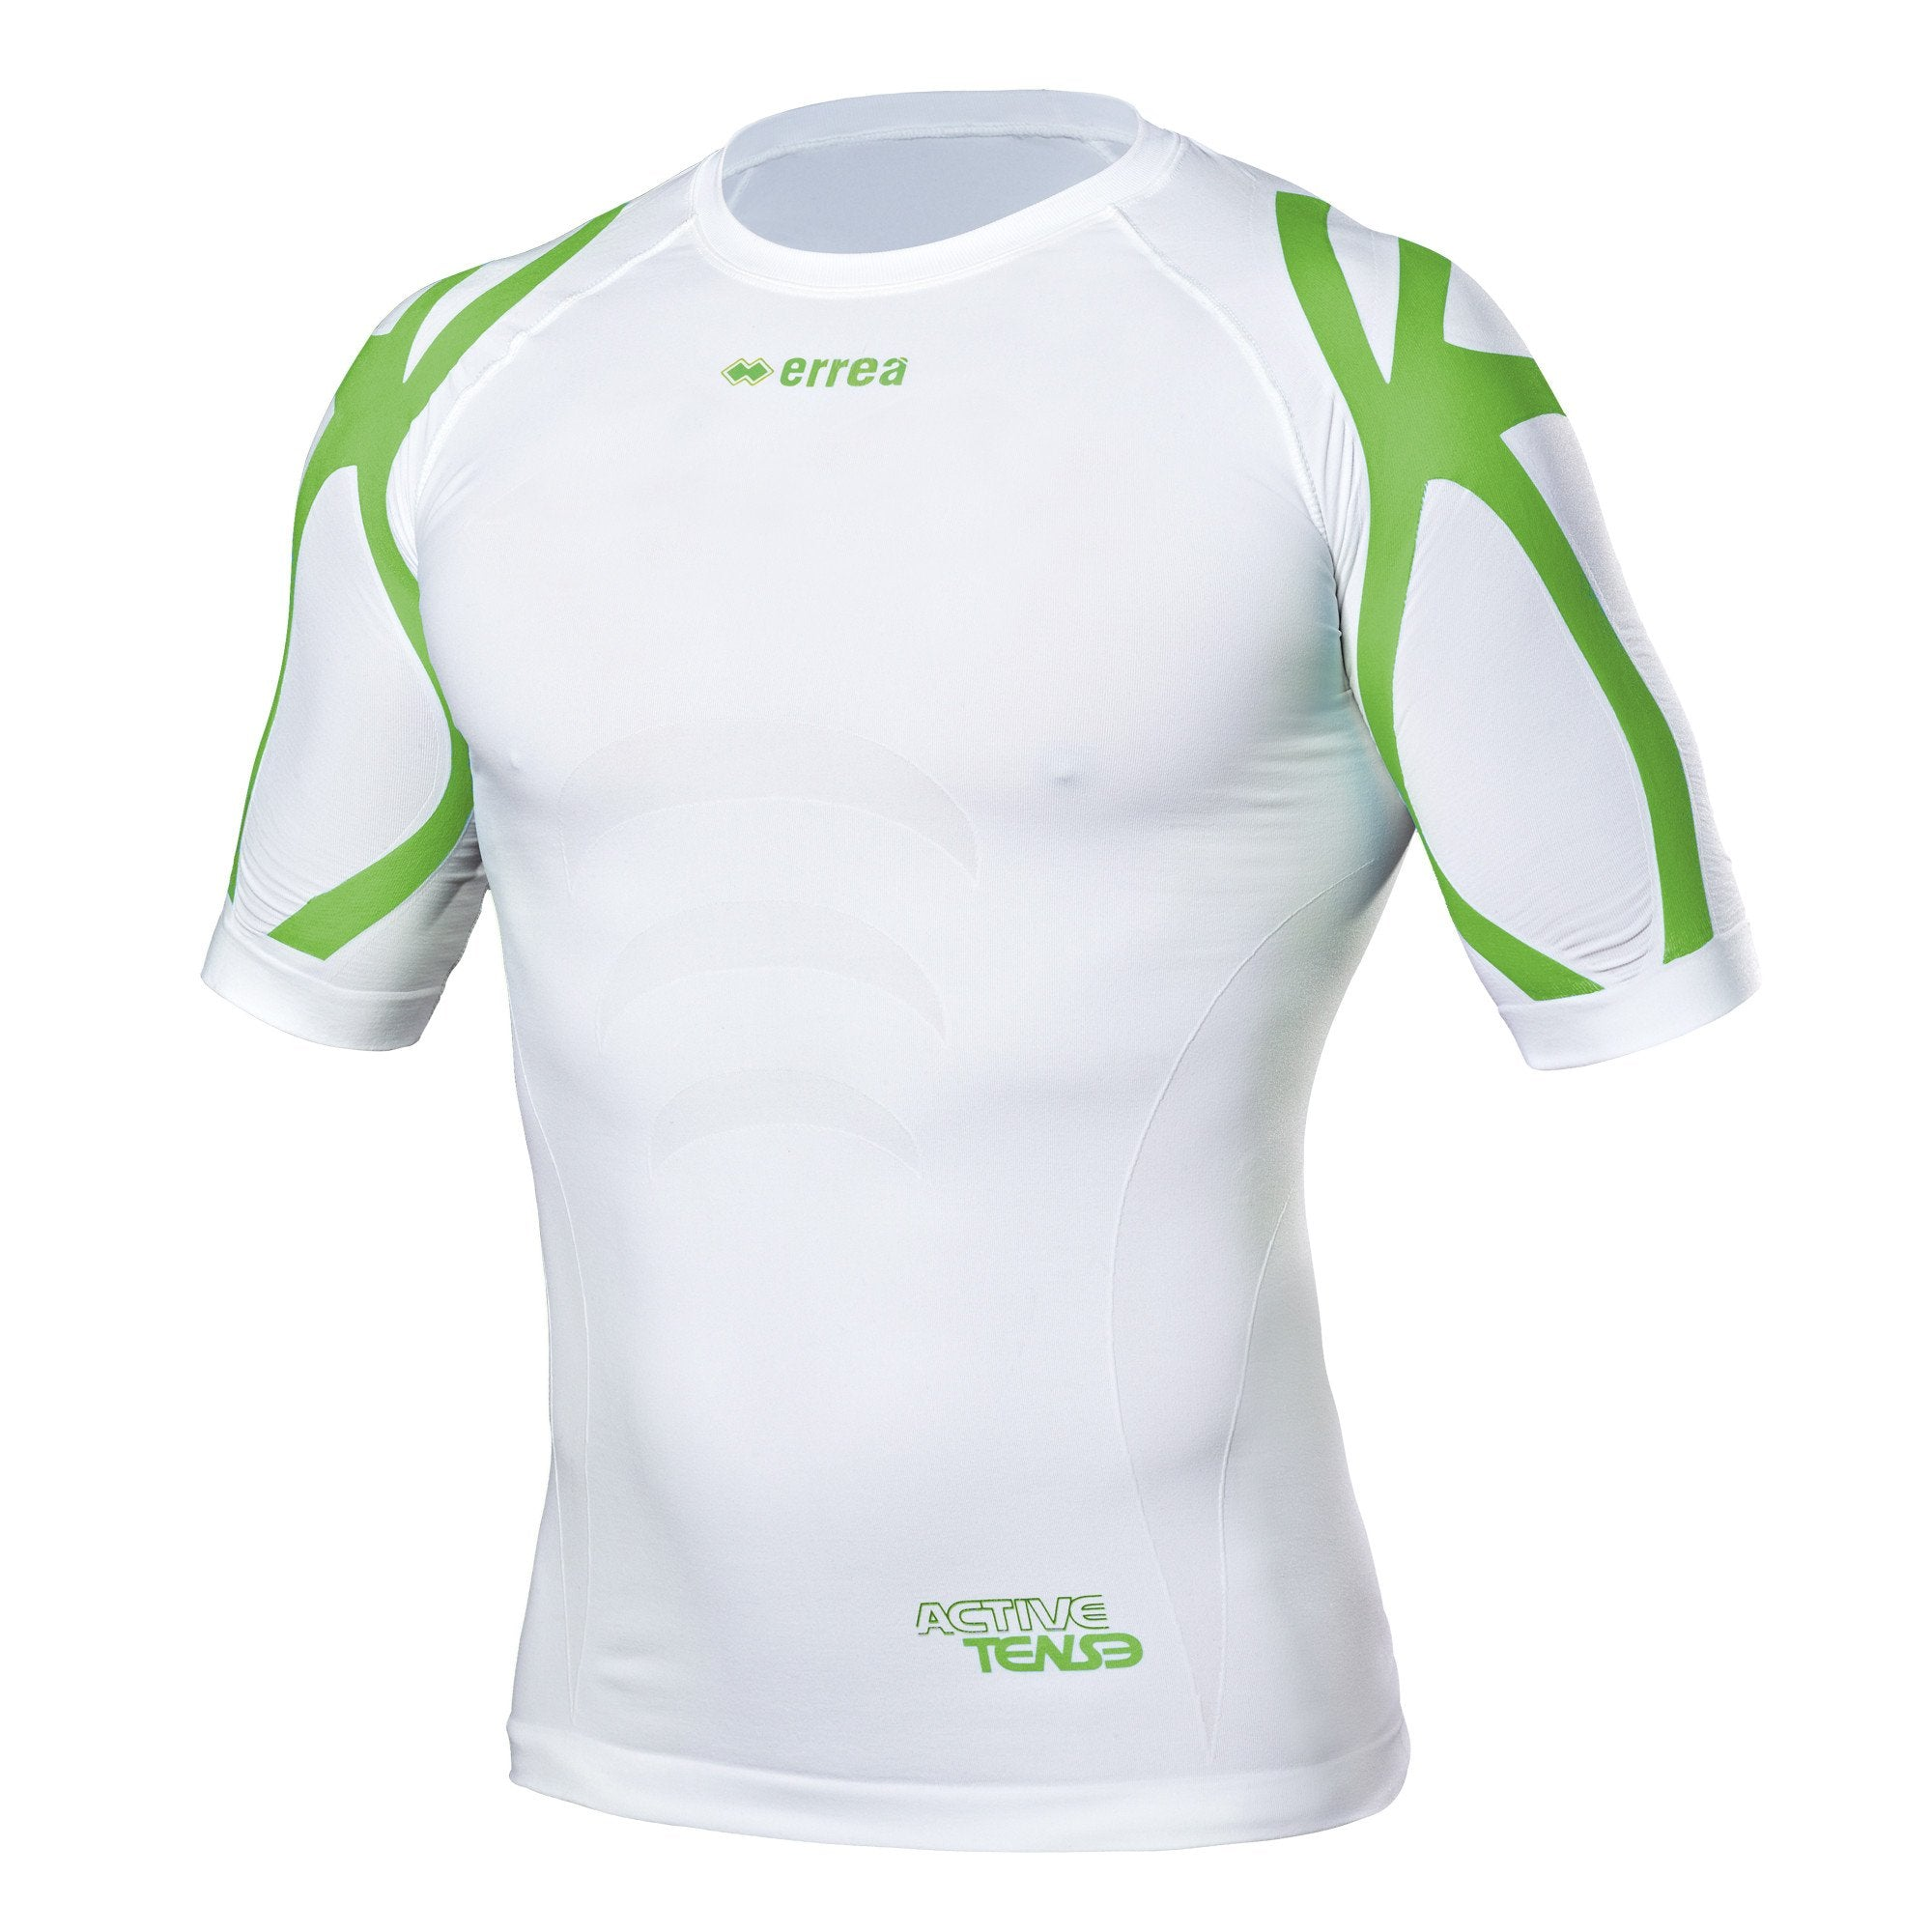 Active Tense - Fysio S/S - ITA Sports Shop